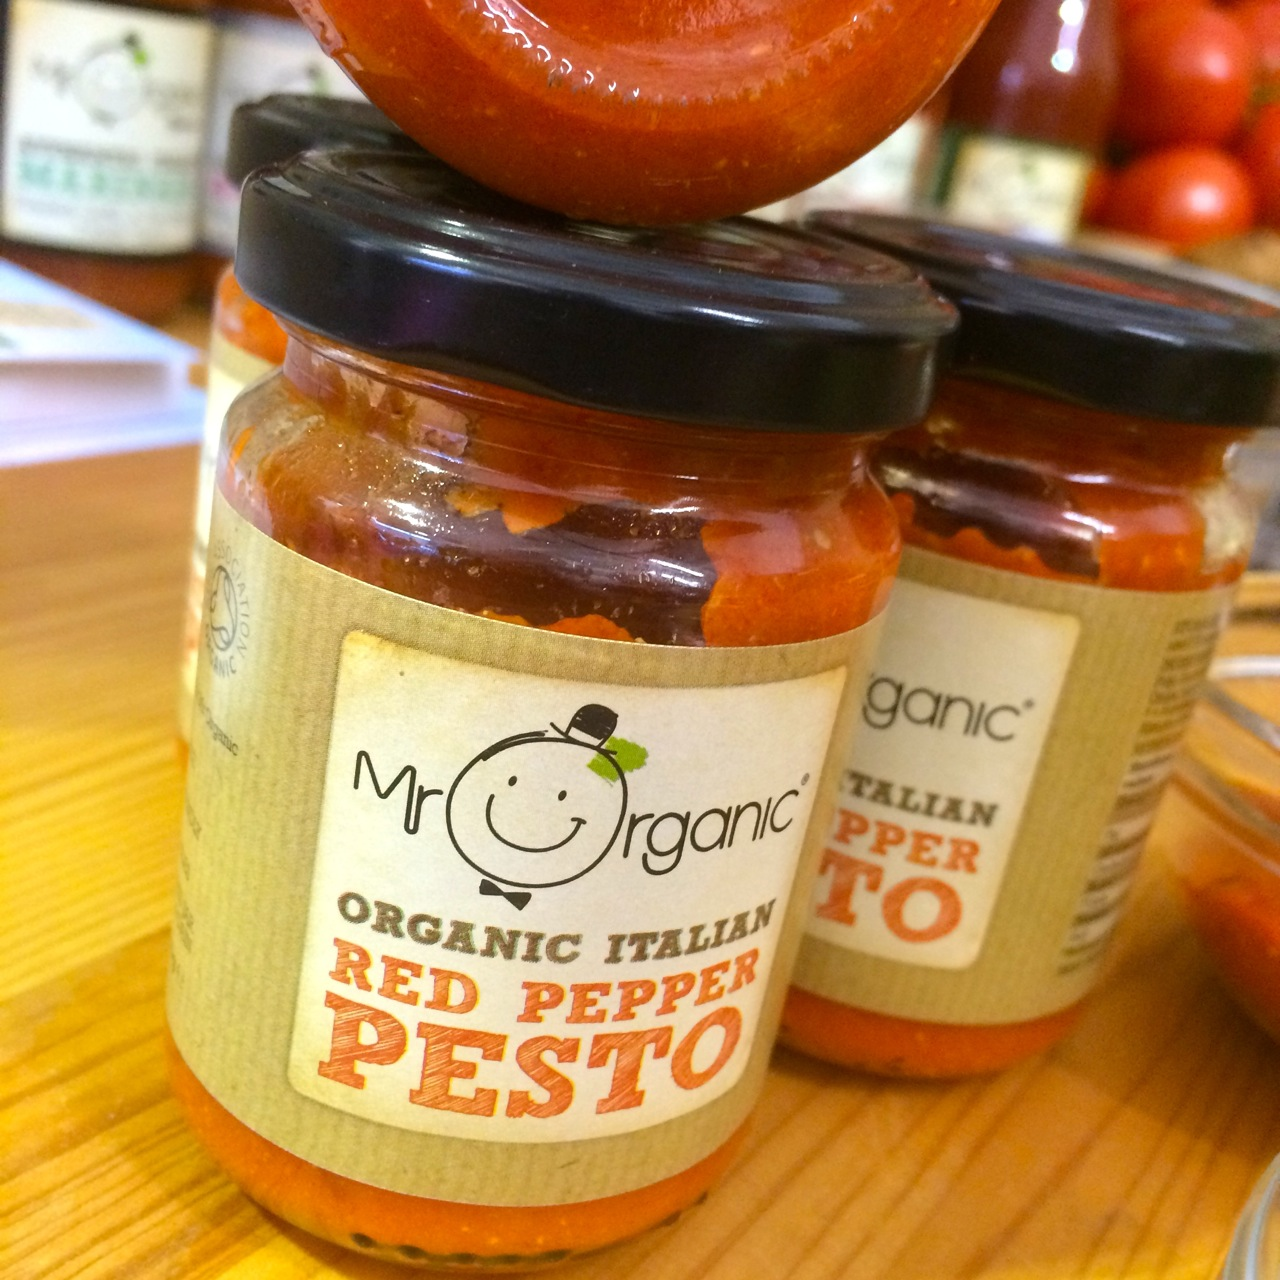 http://i0.wp.com/fatgayvegan.com/wp-content/uploads/2015/09/mr-organic-red-pepper-pesto.jpg?fit=1280%2C1280